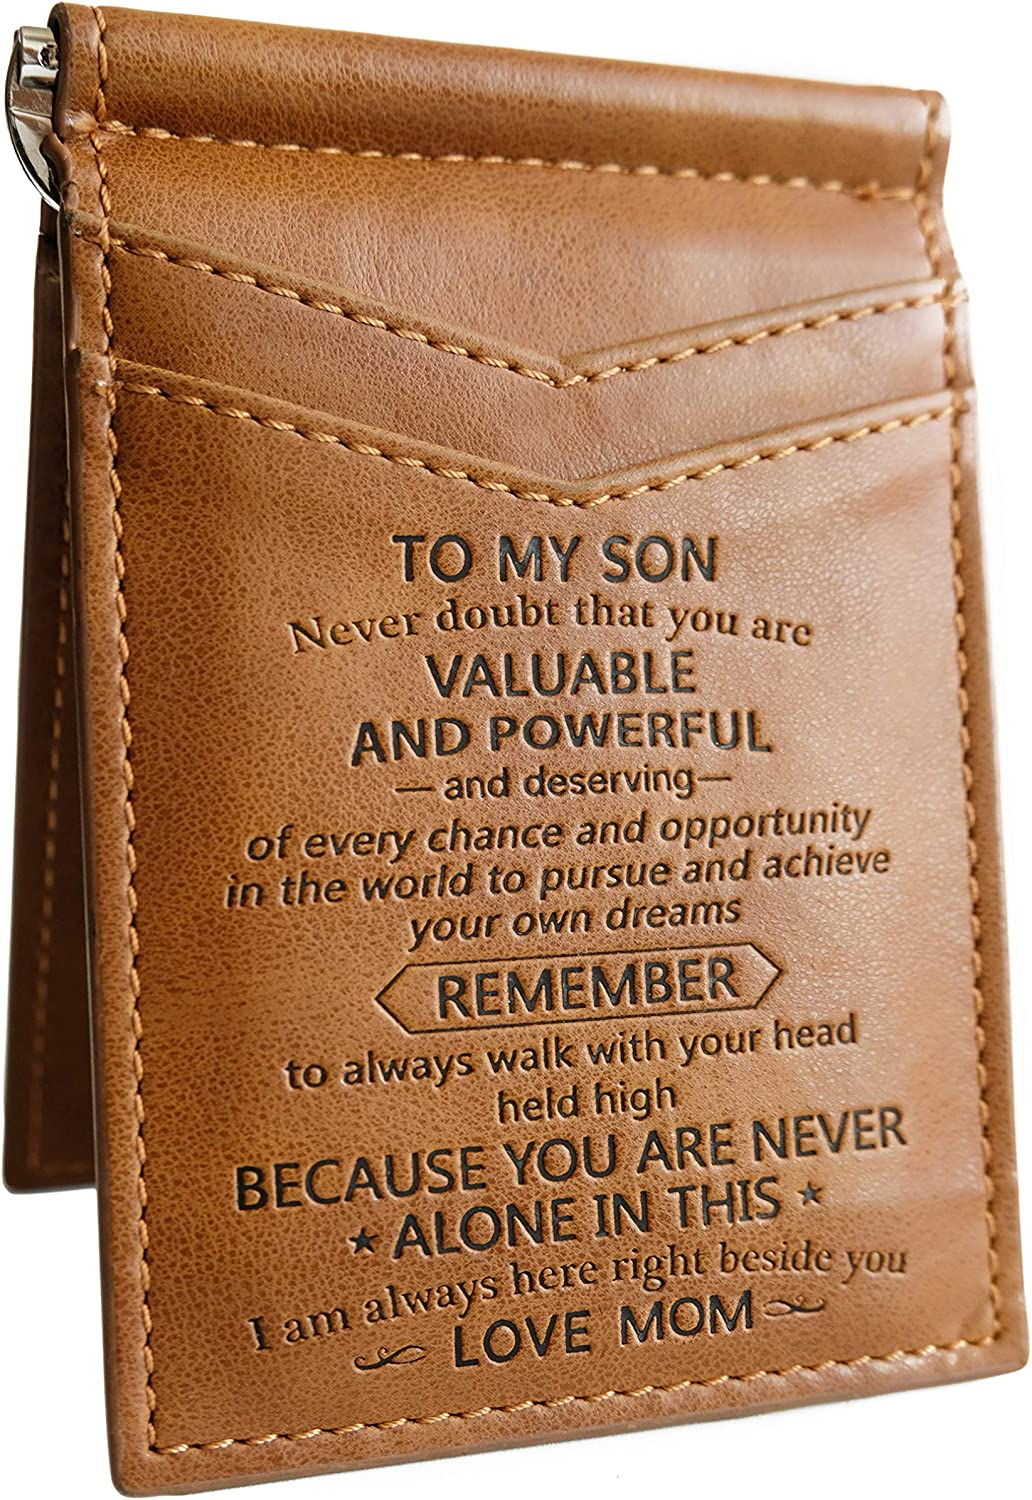 memory gift - Wallet For Son From Mom, Mother Son Gifts, Mother To Son, To My Son, Birthday gift, Son From Mom Card Holder, Father's day, Mother's Day, Christmas, Xmas